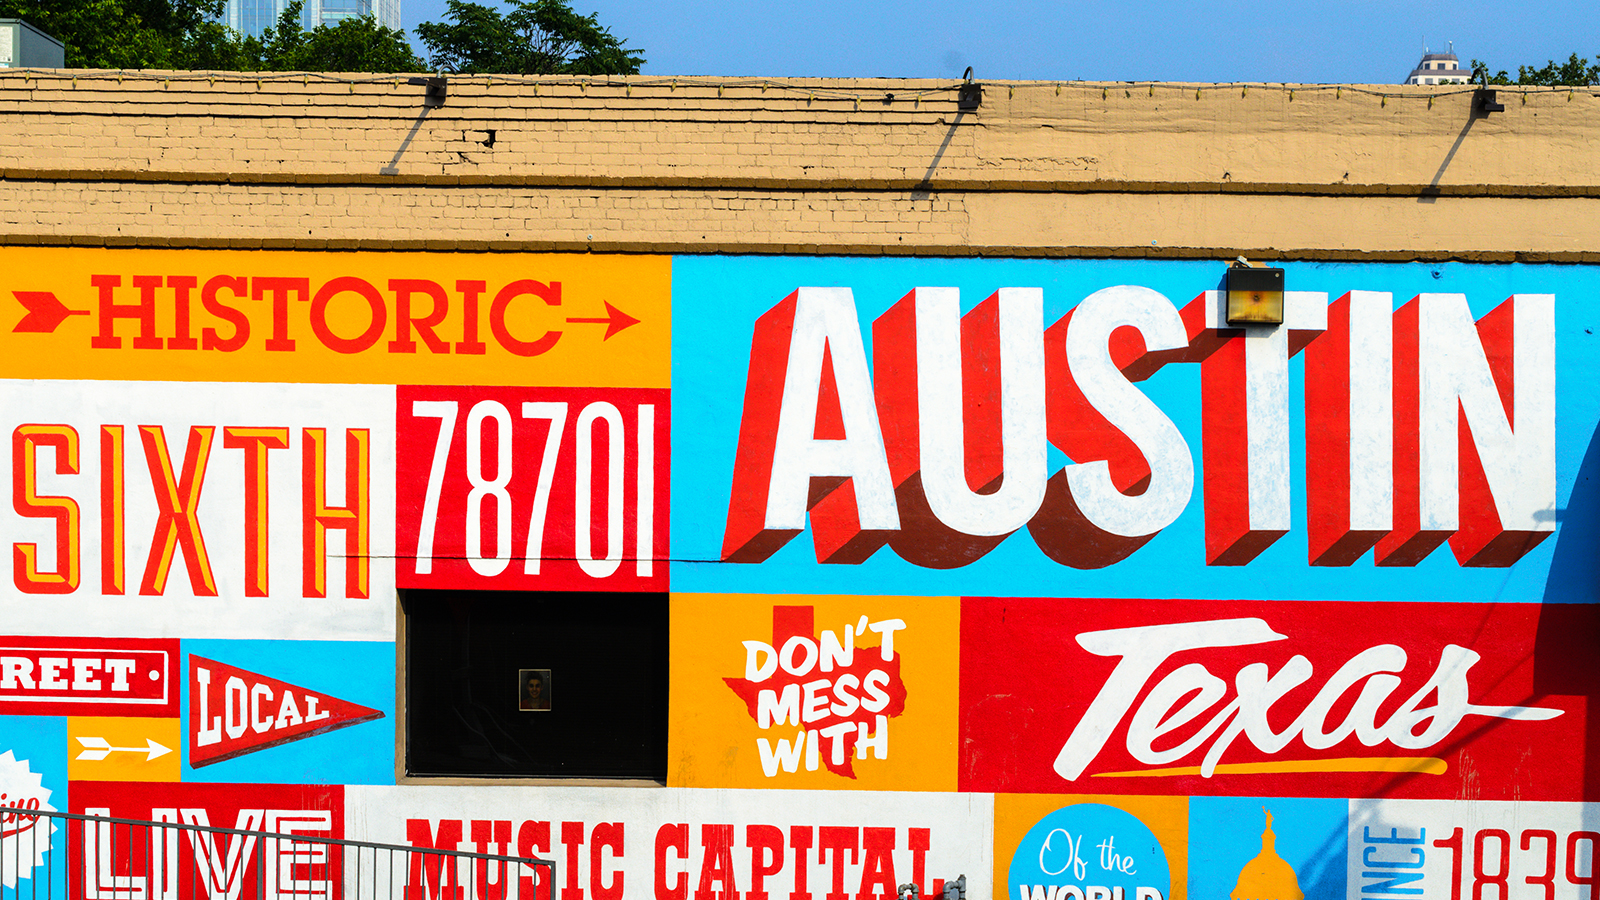 The Top 15 high-paying employers in Austin with the most open jobs